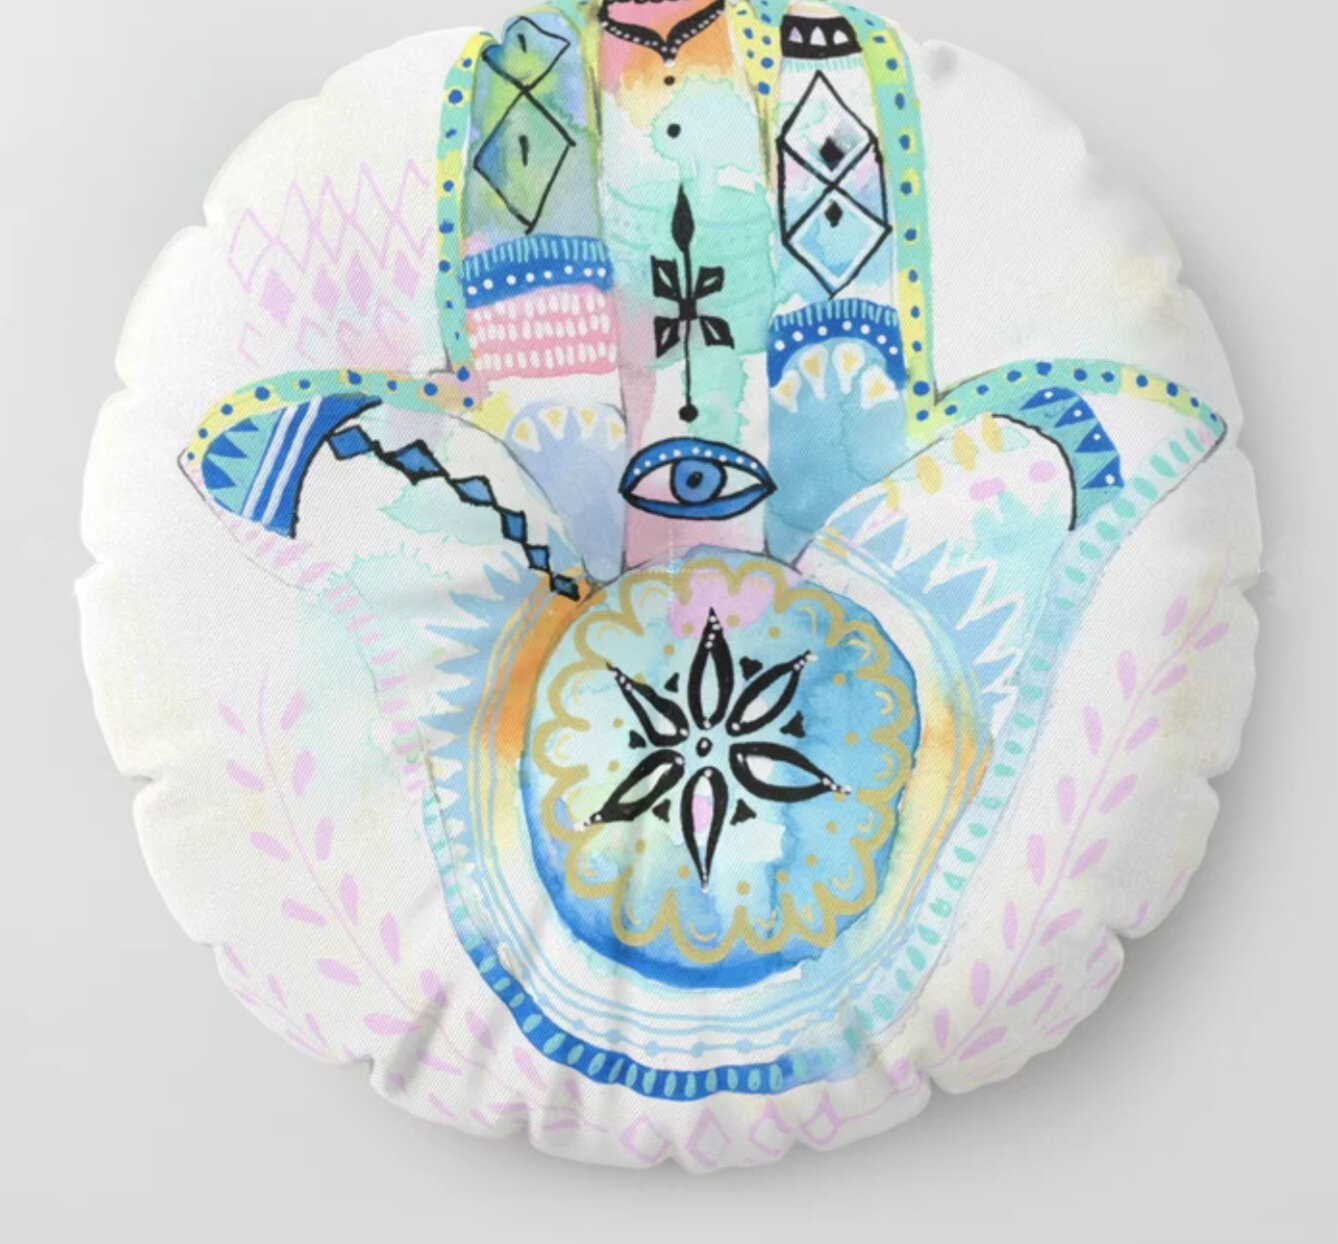 HamsaHand-MeditationCushion-gingerdeverell.jpg